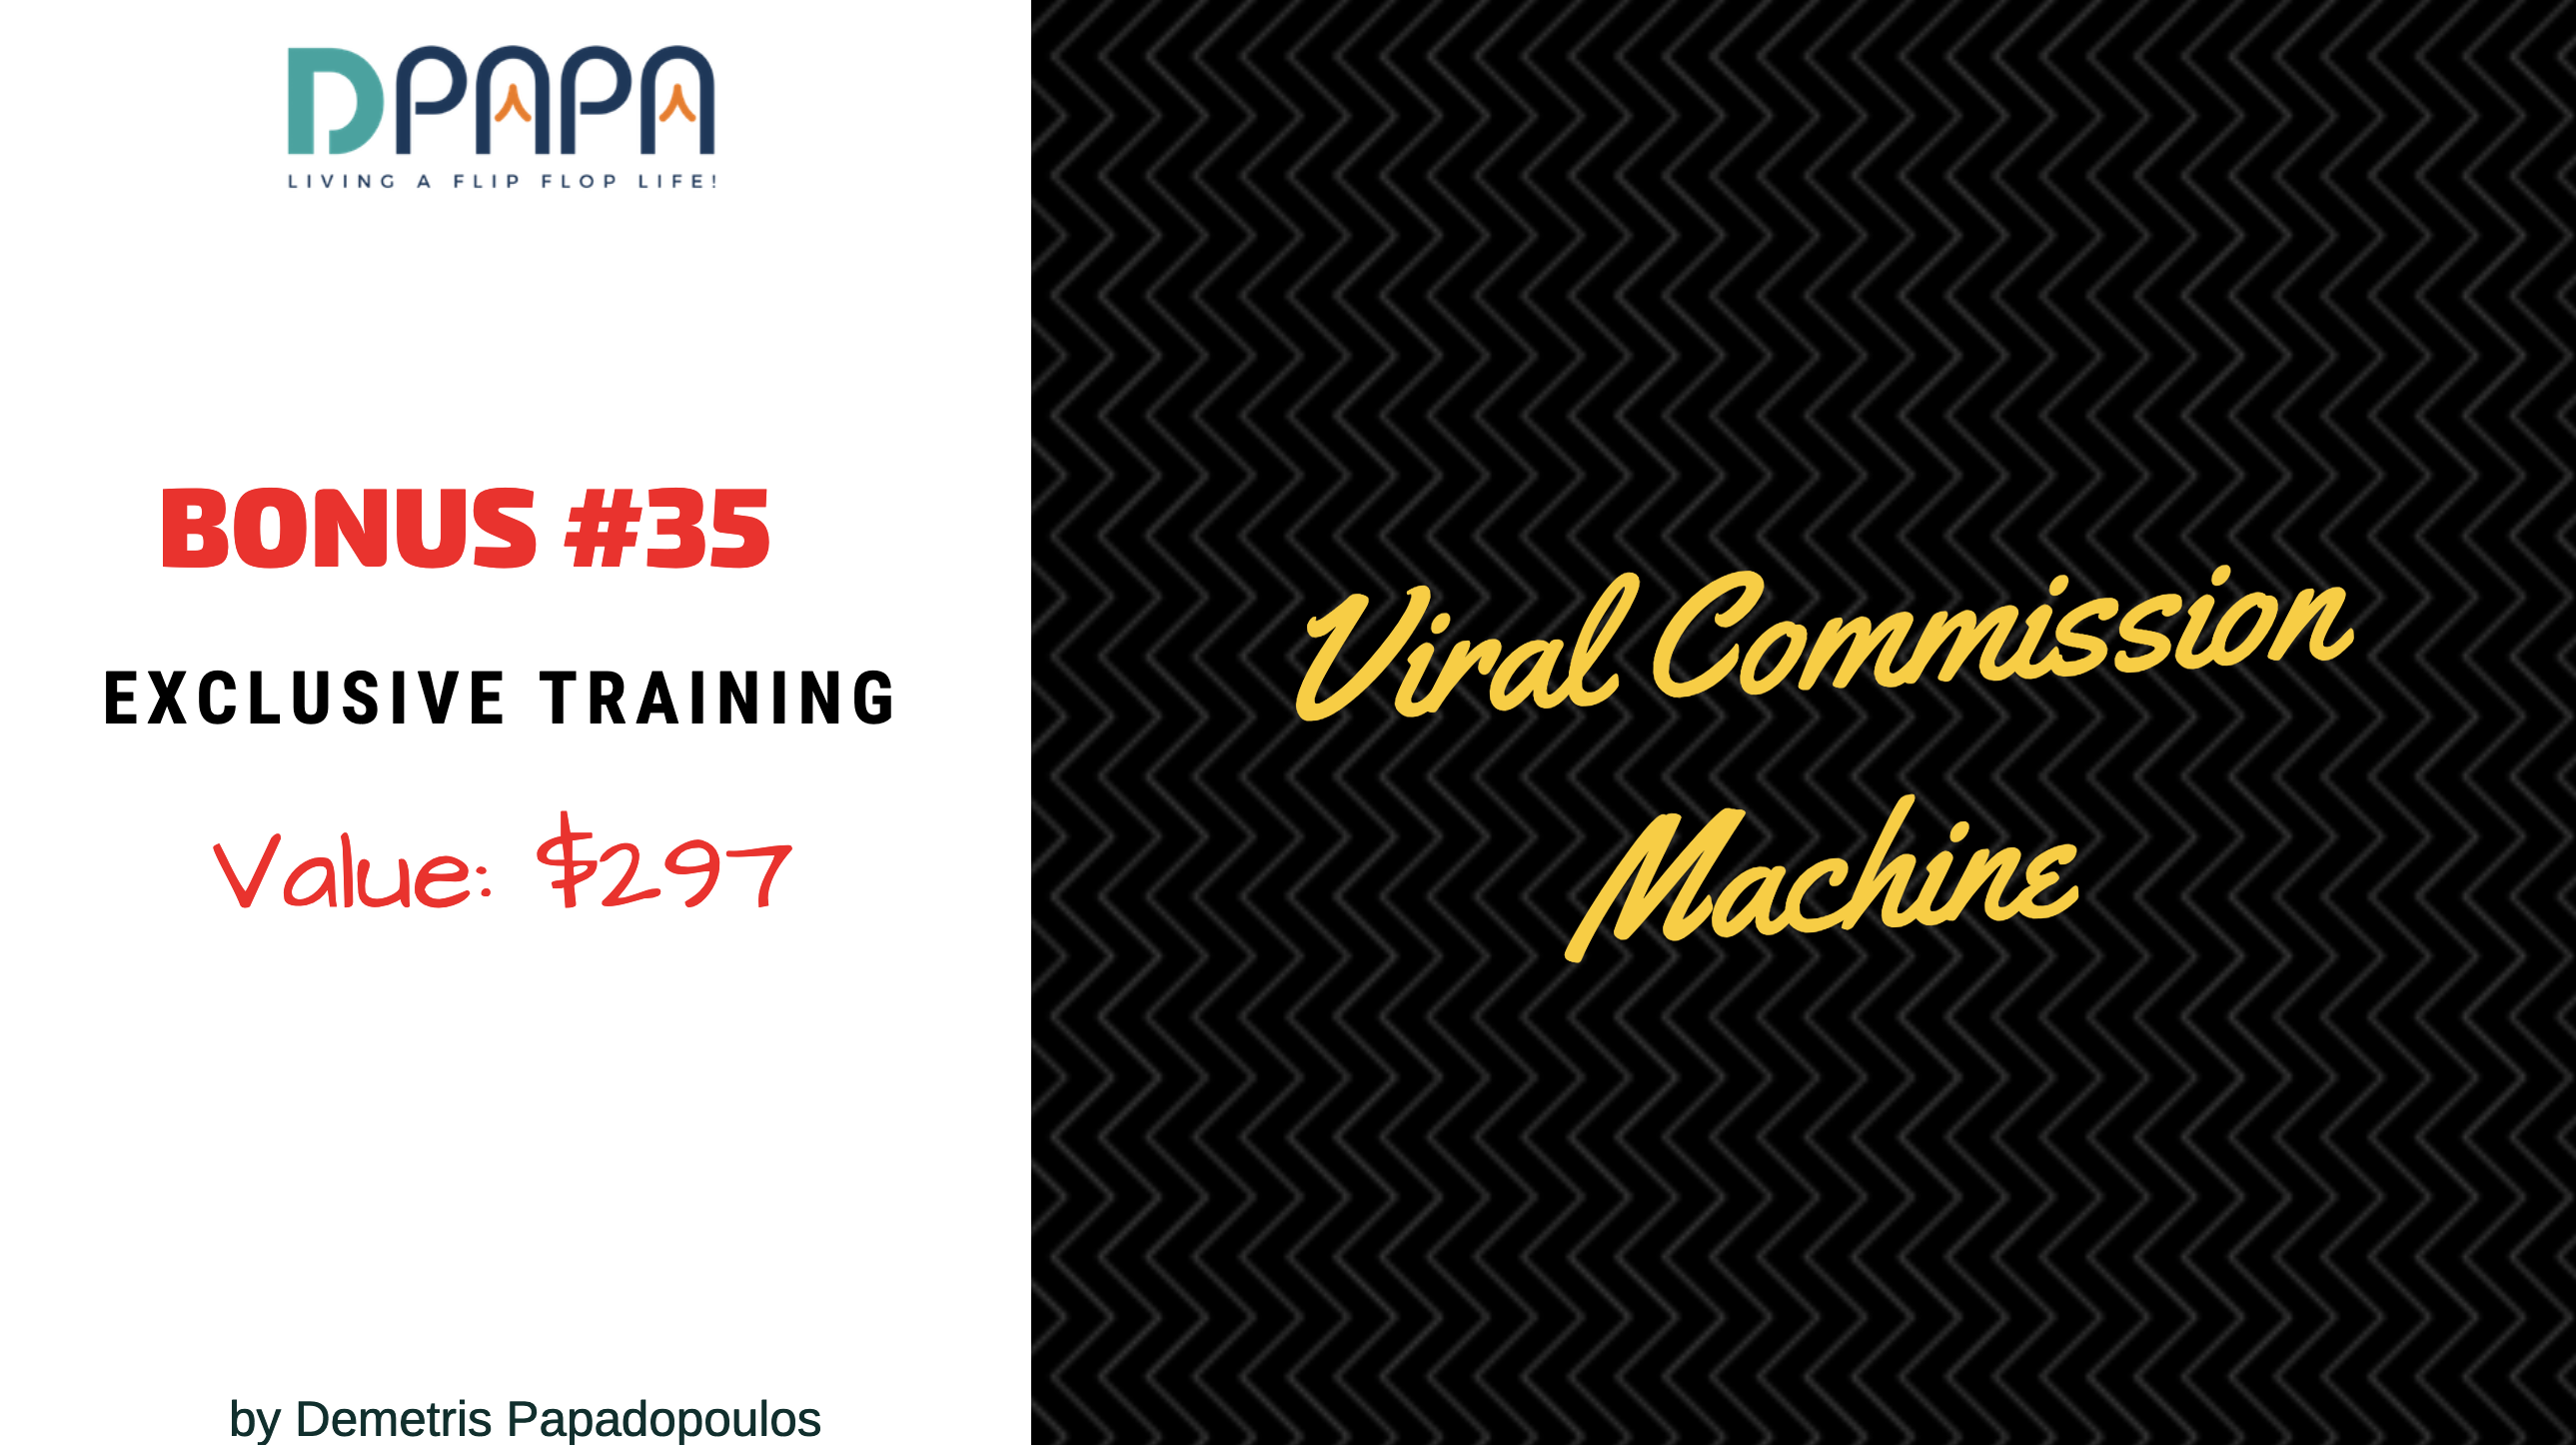 How To Combine CPA Affiliate Marketing & FB ads to Turn $5 into $163 in 30 min 44